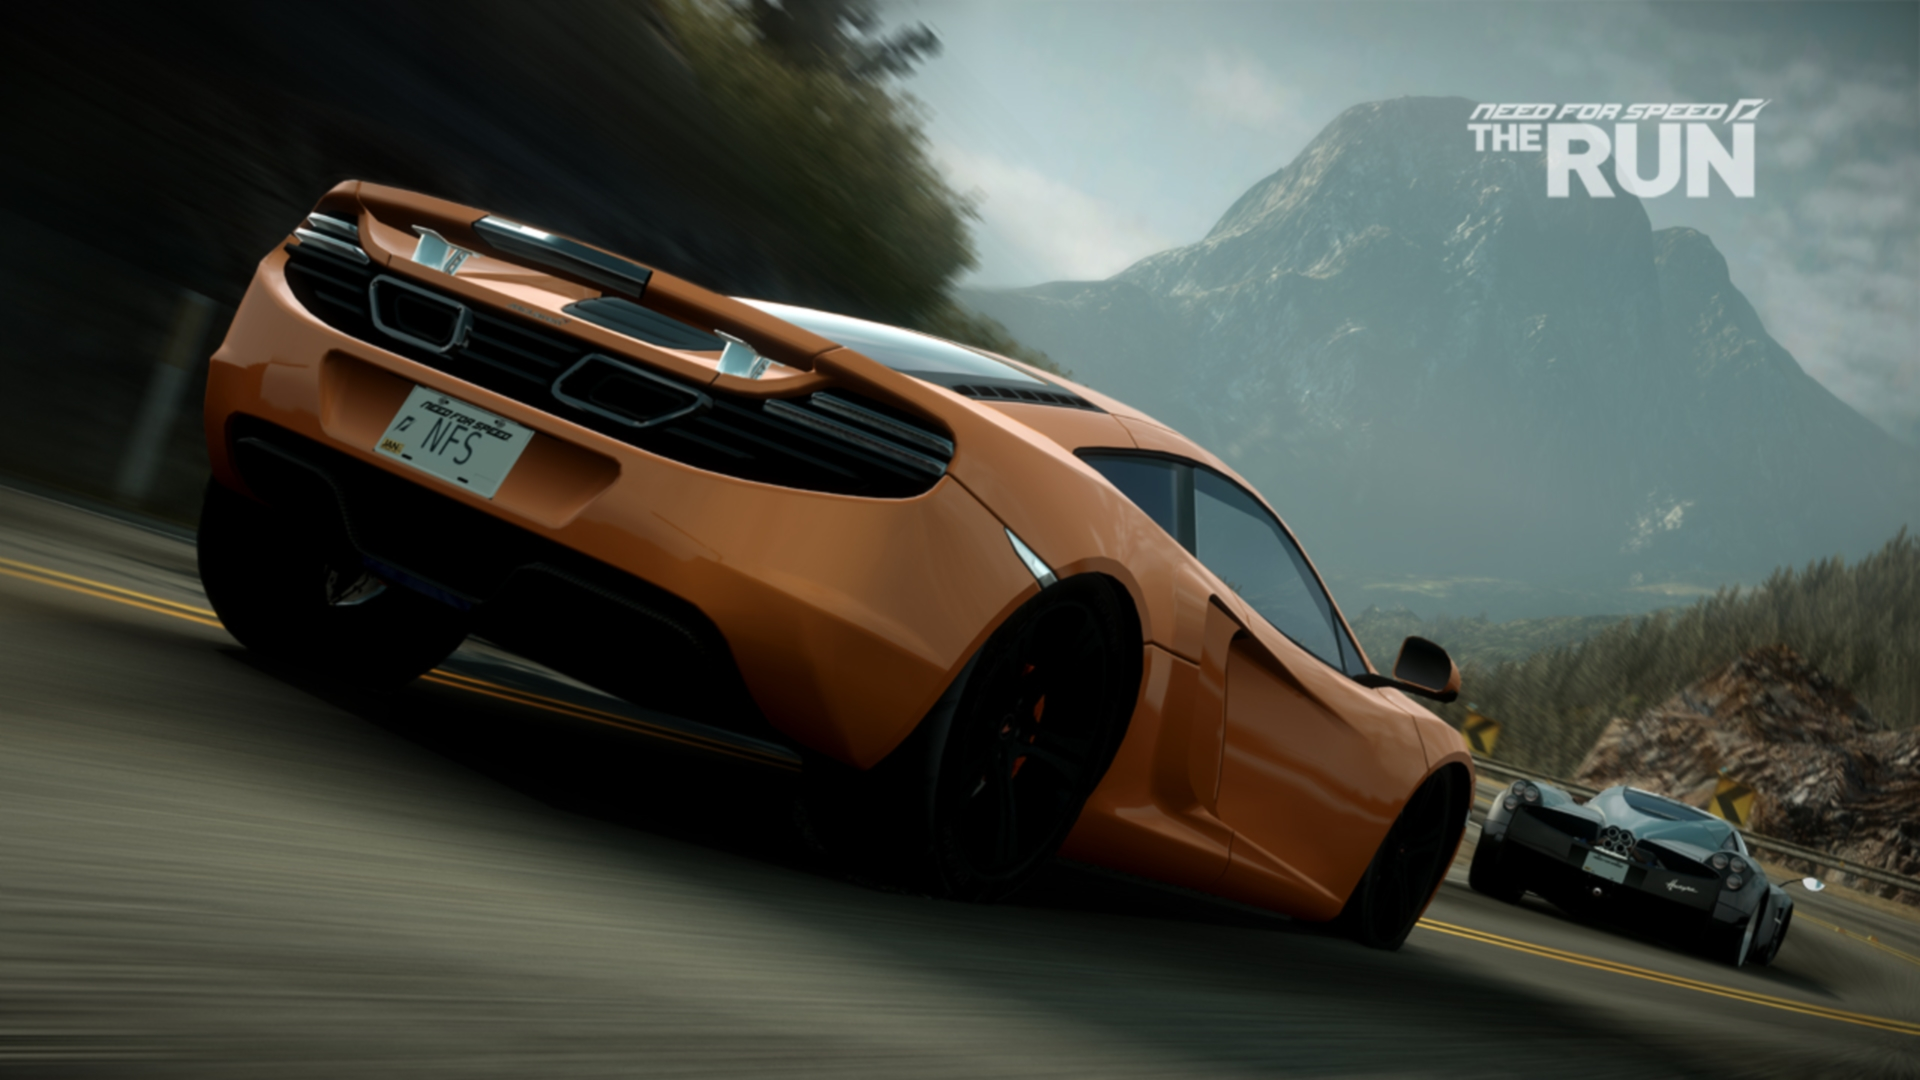 Nfs the run hd wallpapers i have a pc nfs the run hd wallpaper 006 voltagebd Choice Image